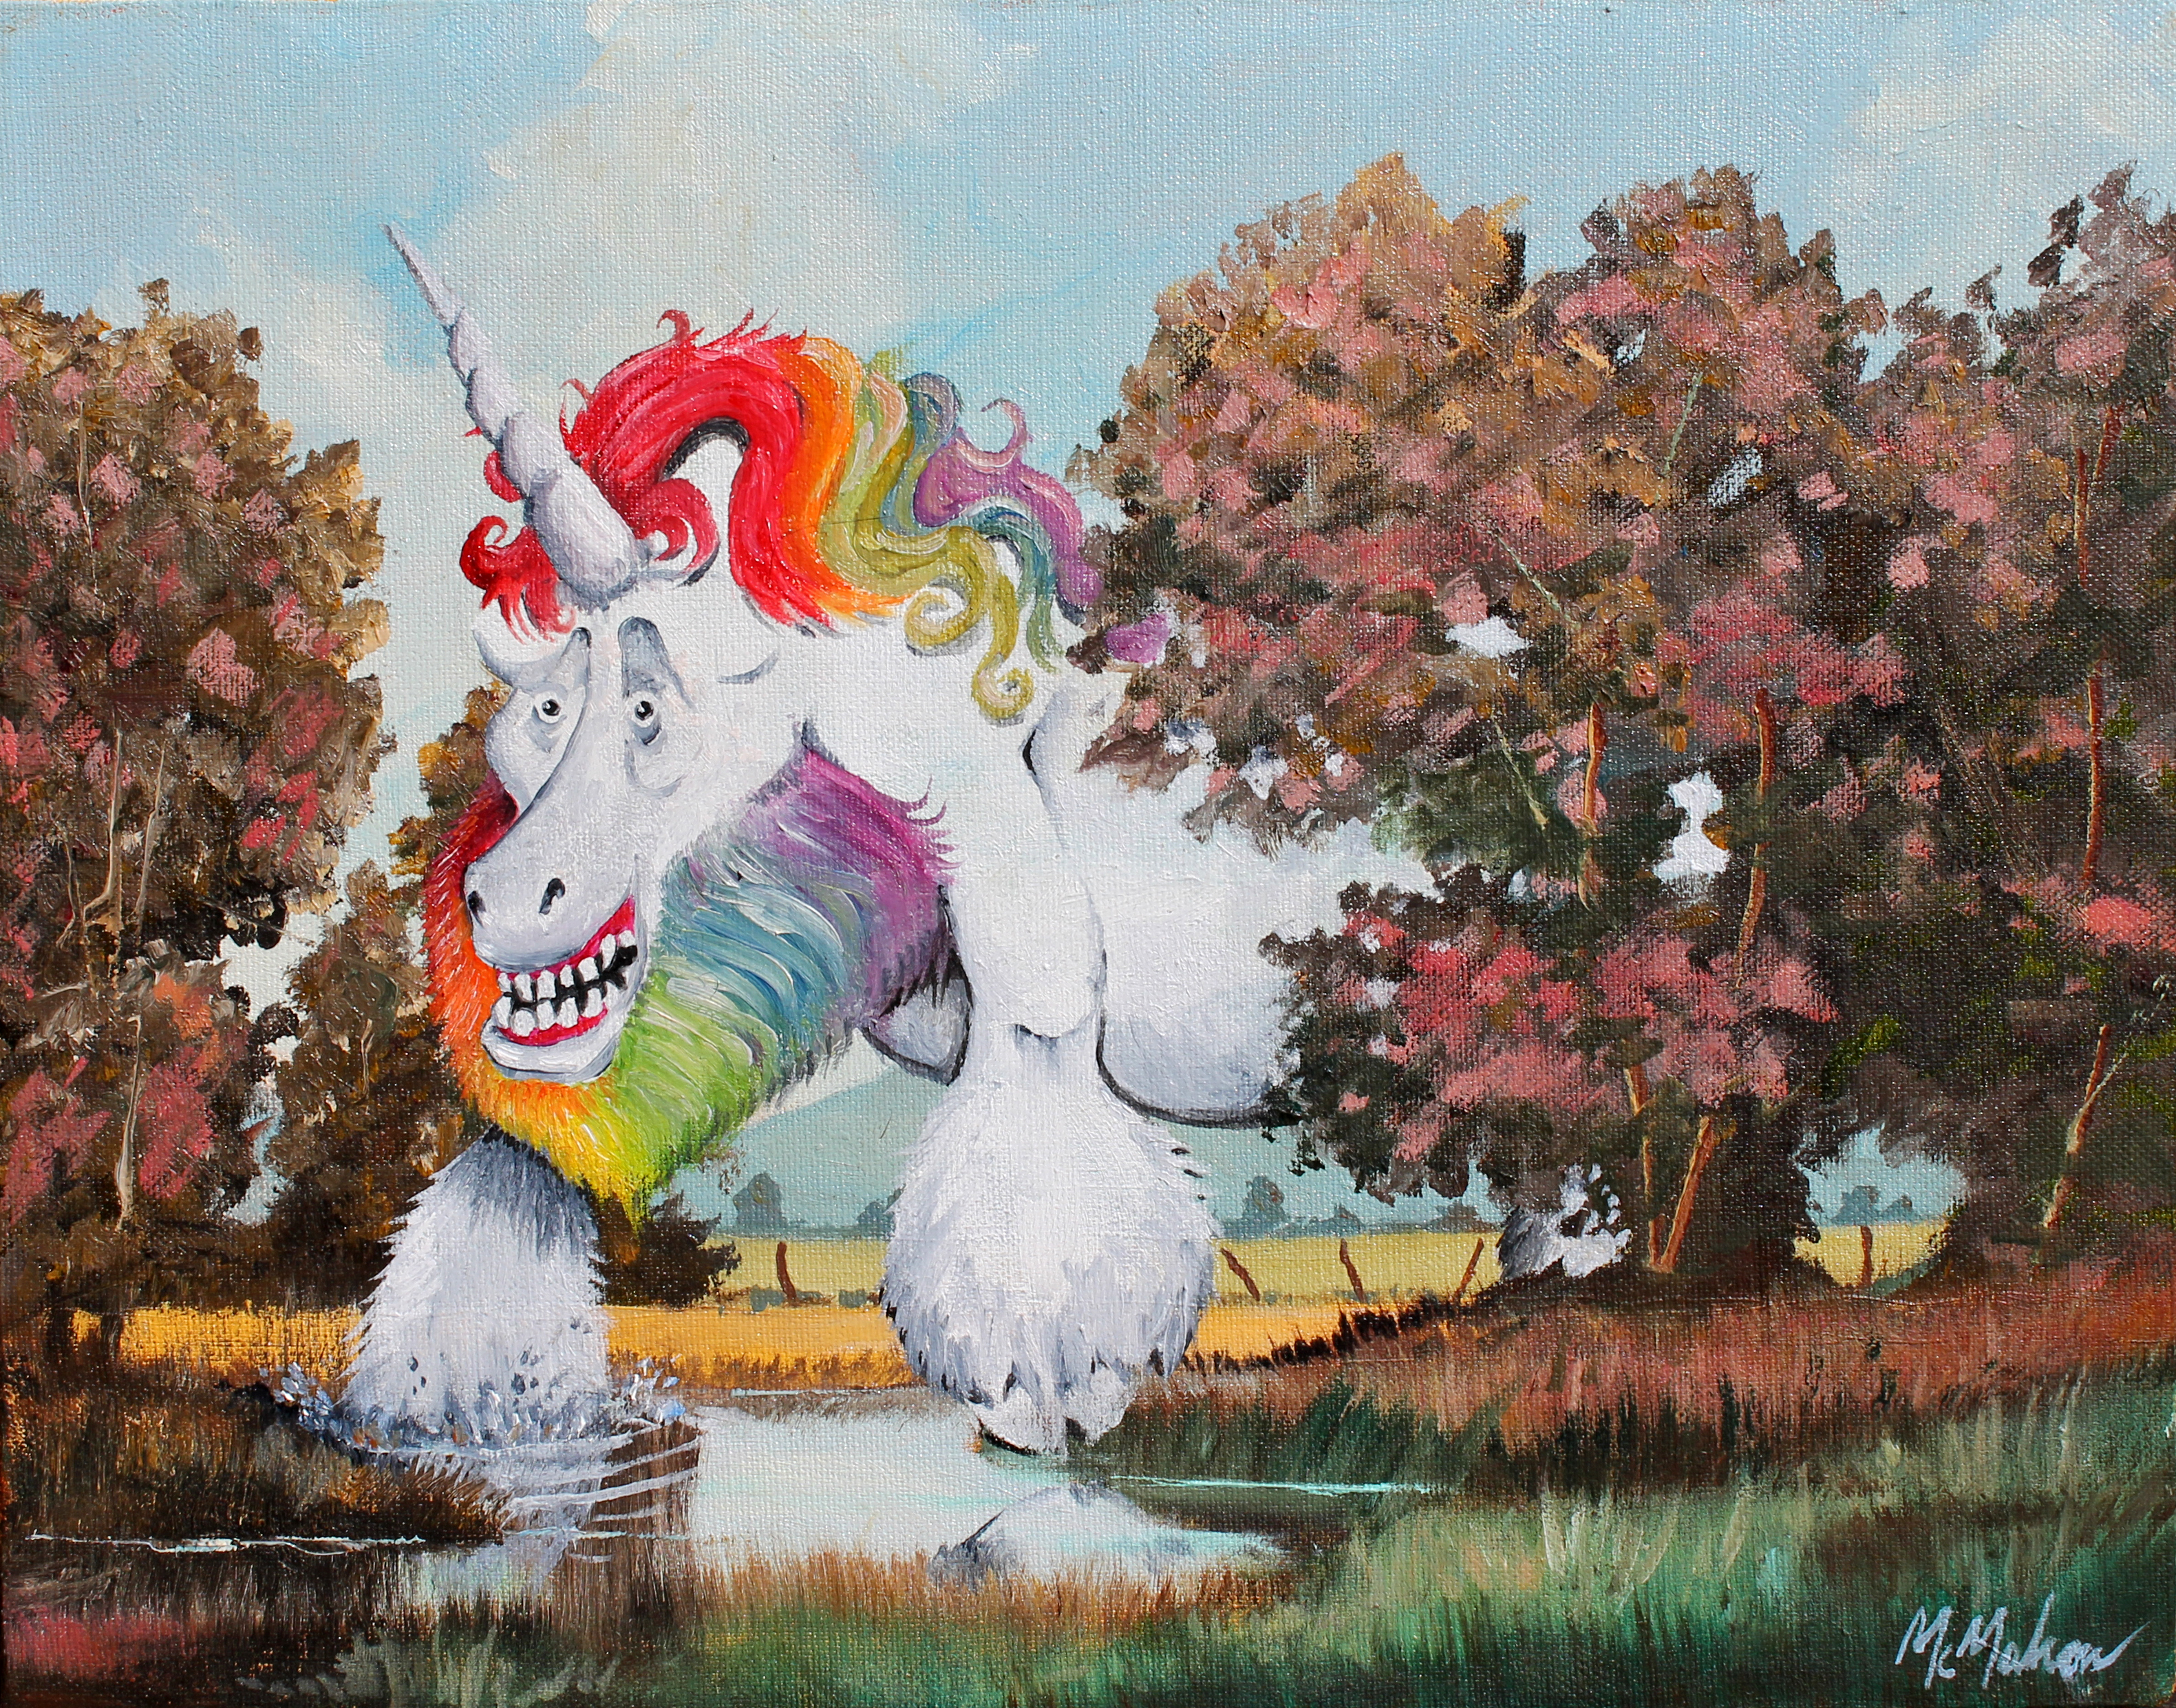 Behold the Majesty of the Juvenile Squatchicorn...